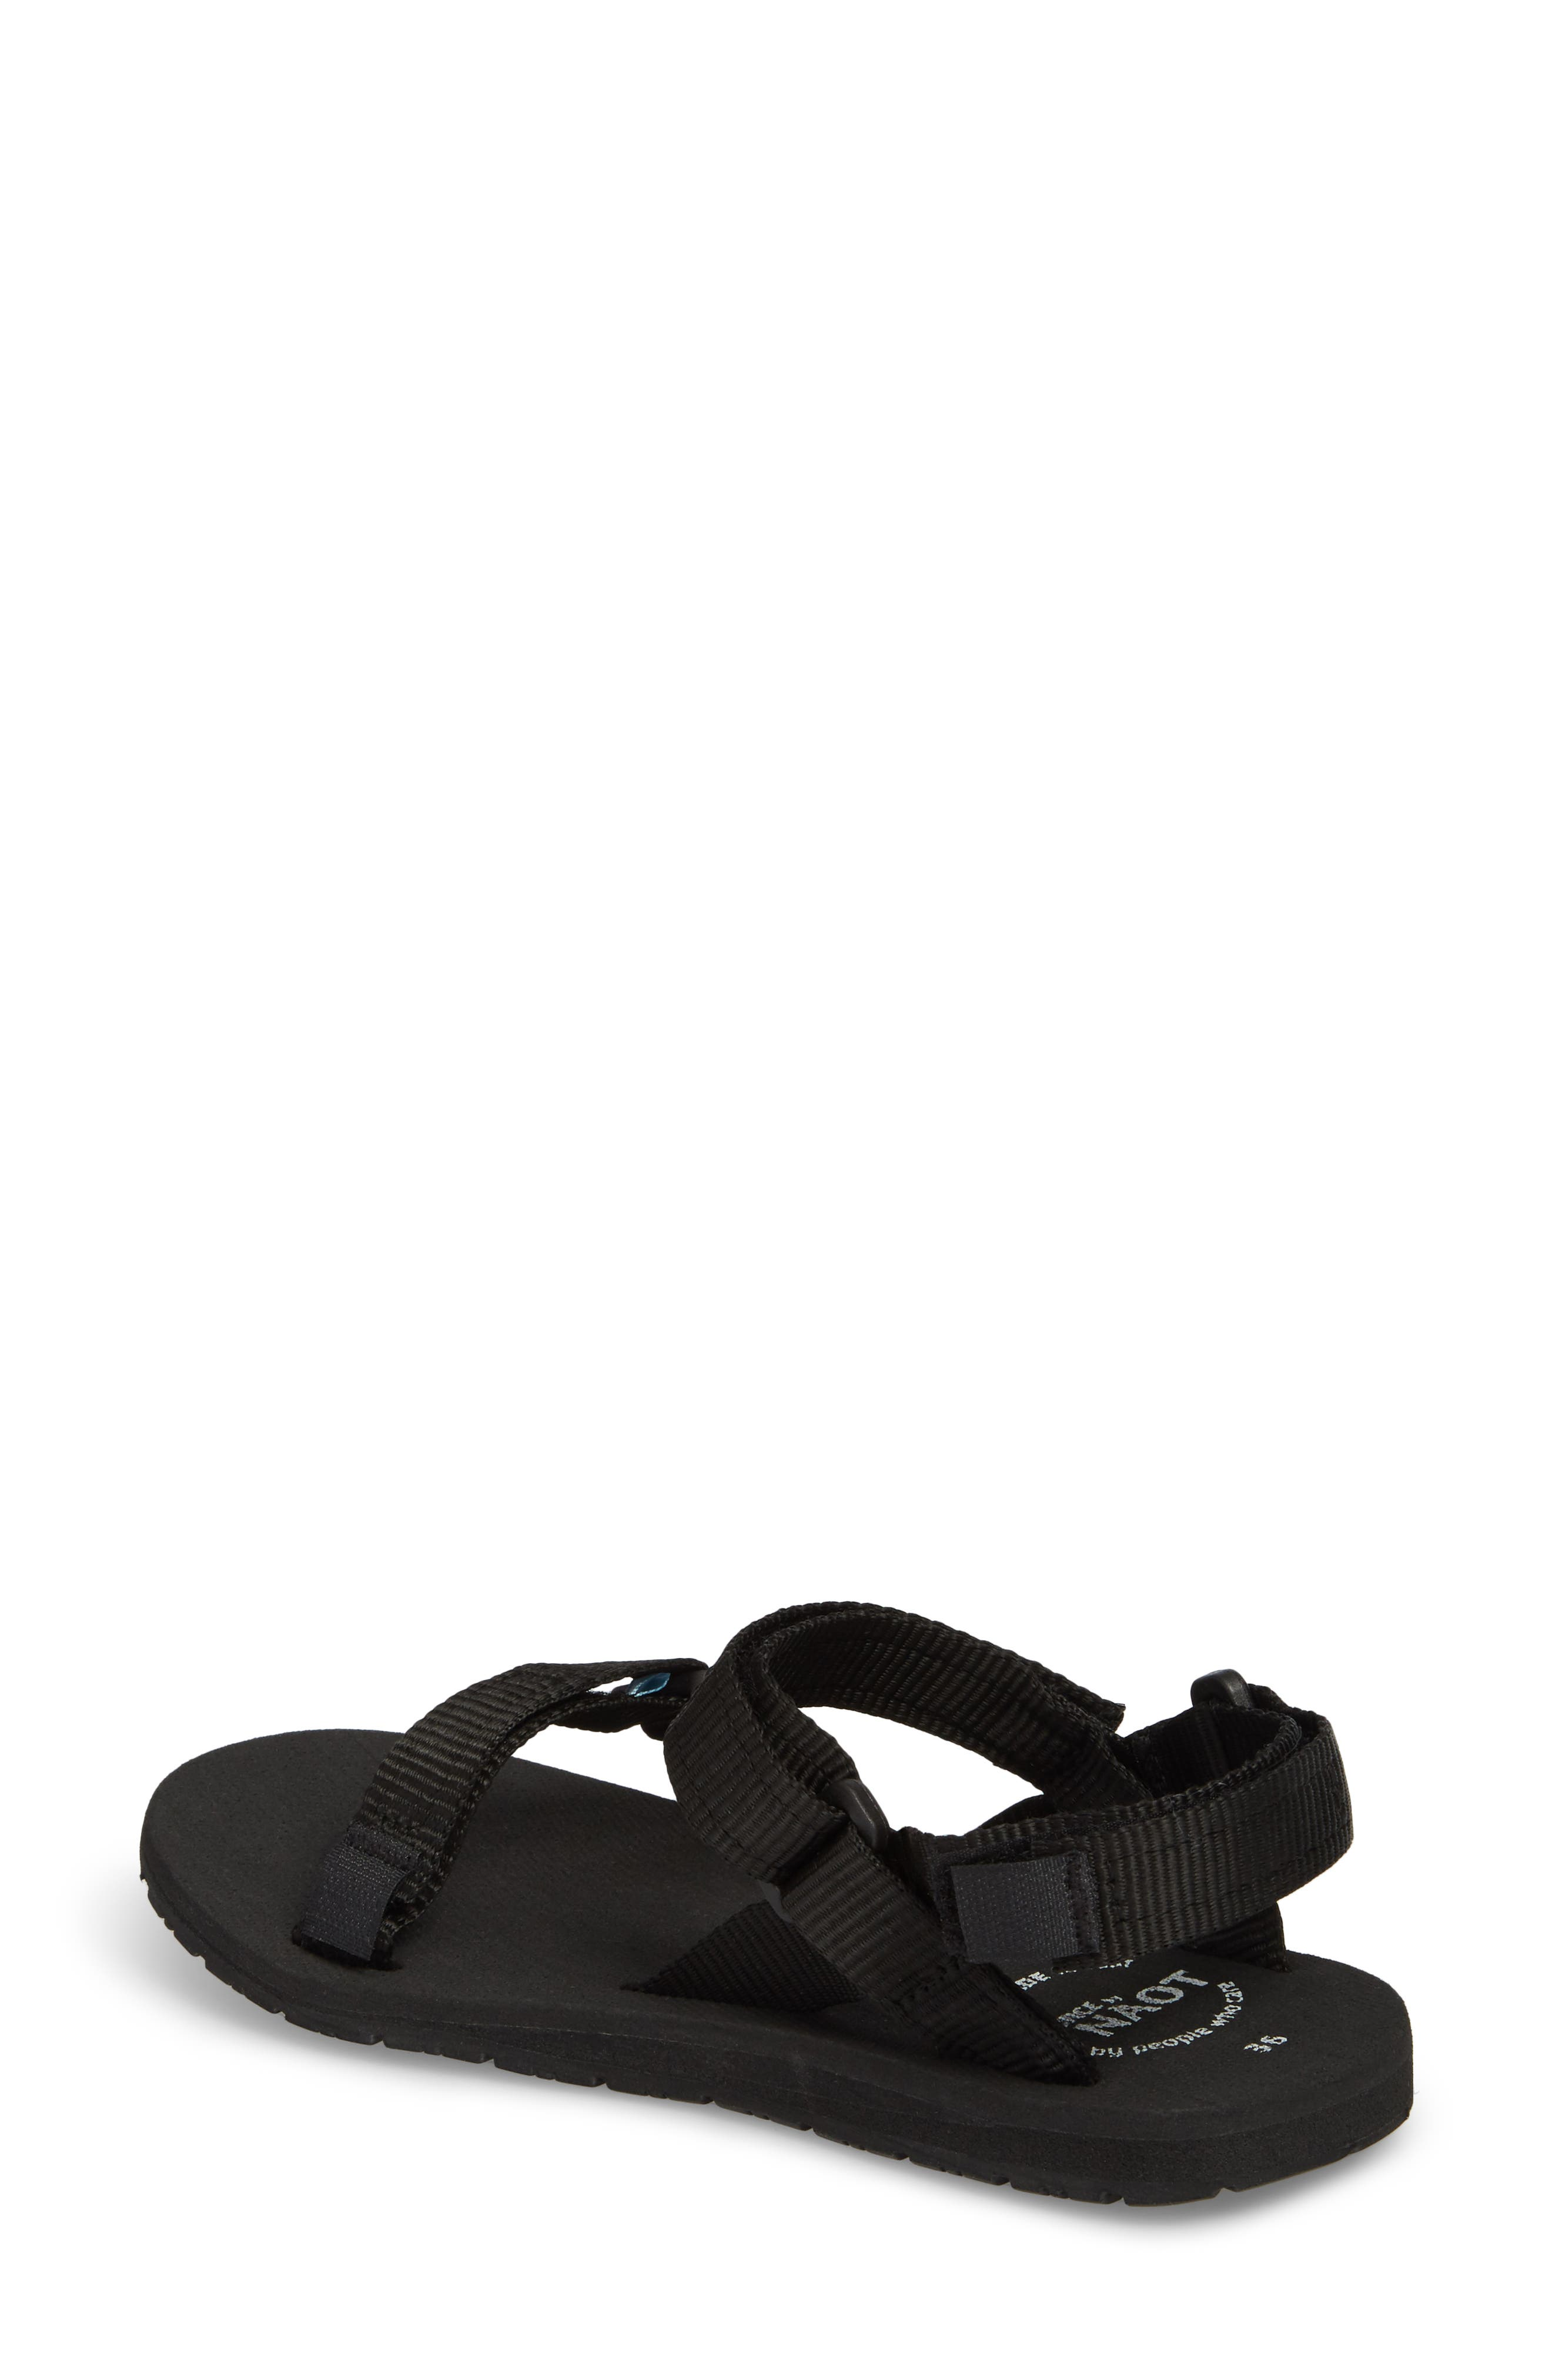 Haven Waterproof Sandal,                             Alternate thumbnail 2, color,                             BLACK FABRIC